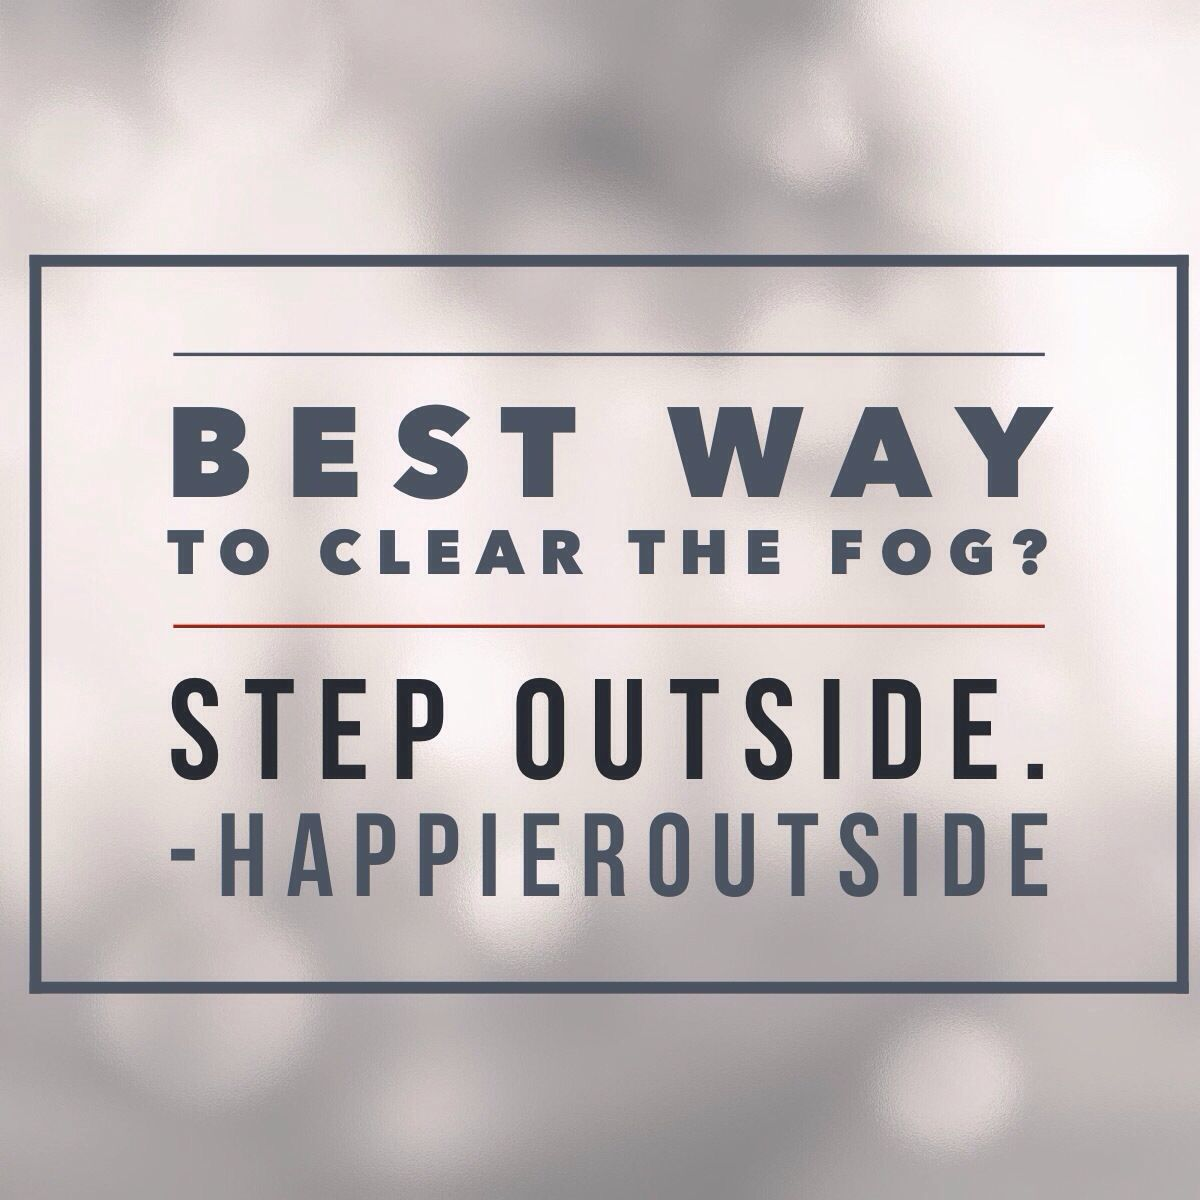 Best way to clear the fog? Step outside!